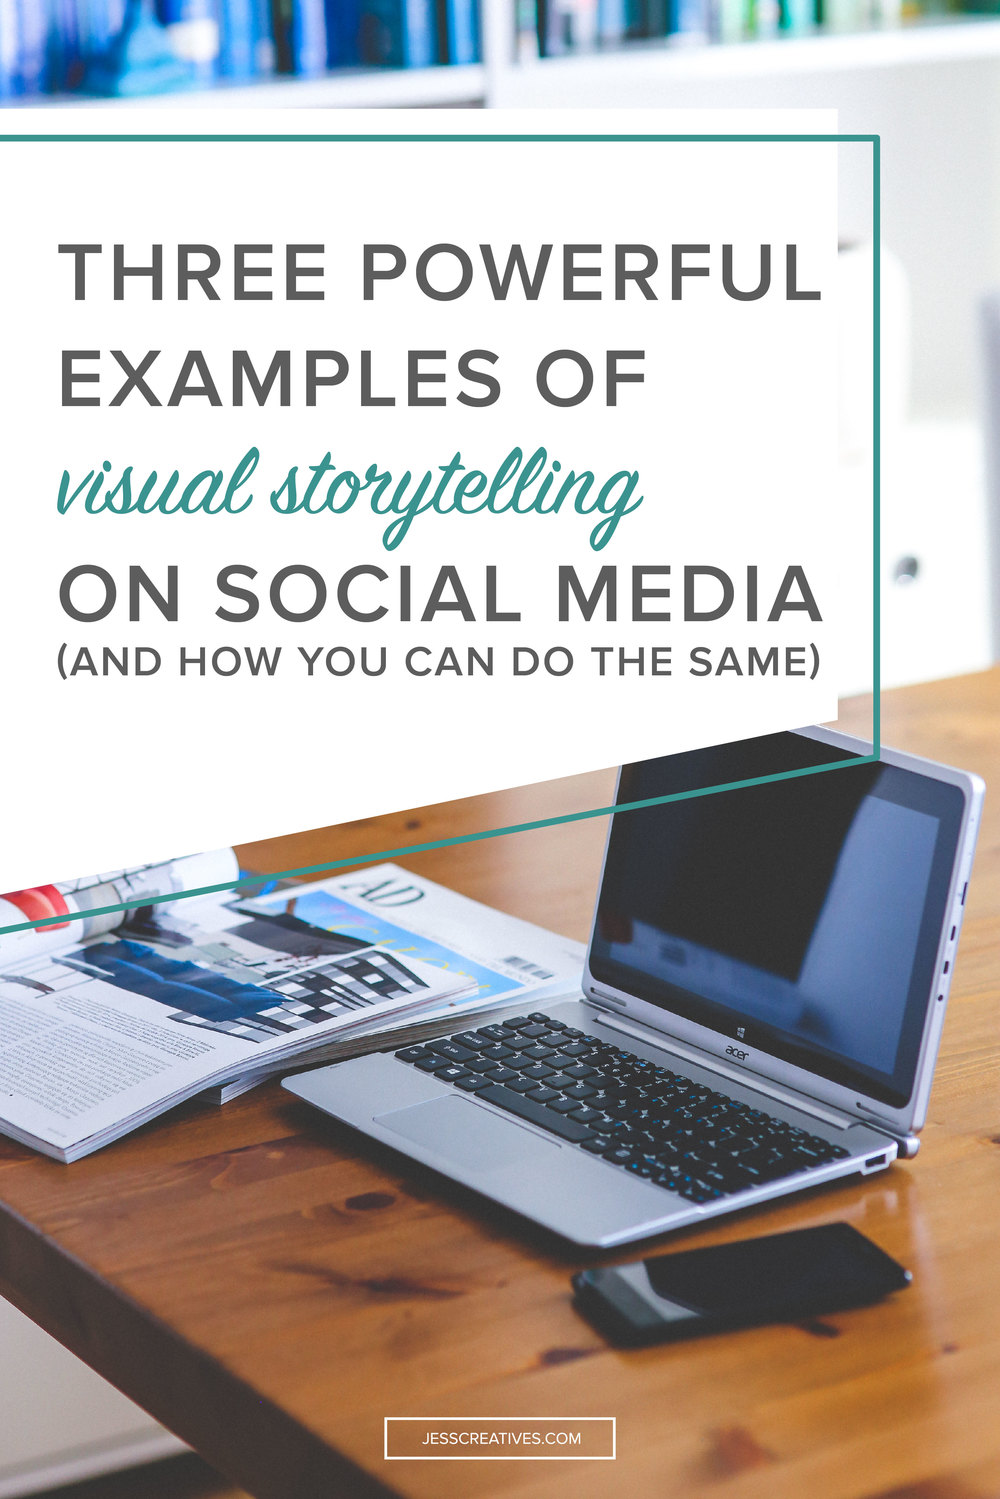 Visuals convey stores in a more elegant, entertaining, and informative way. But, there's more to it than just popping in a few images on your blog. Be persuasive, use high quality images, tell a story with value and a story that appeals to people.